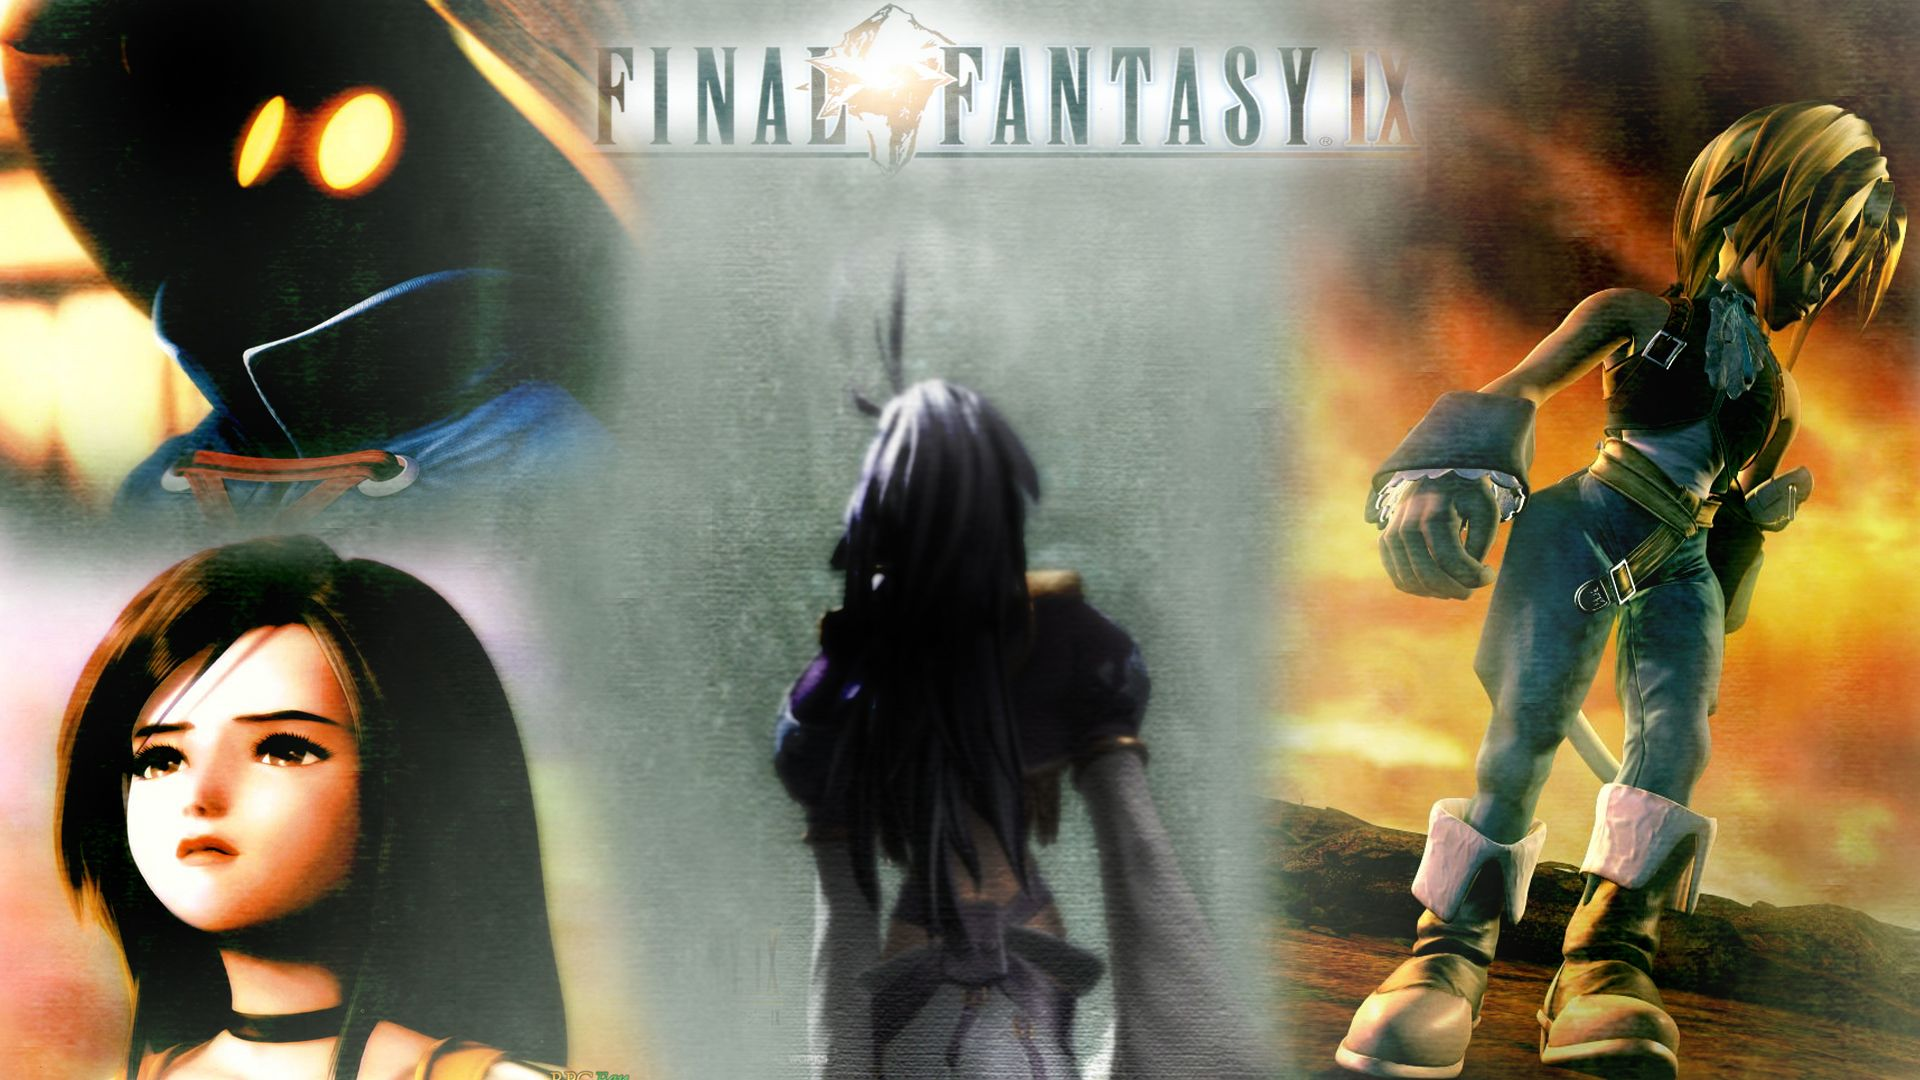 14 Final Fantasy Ix Wallpapers Final Fantasy Ix Backgrounds Final Fantasy Ix Final Fantasy Fantasy